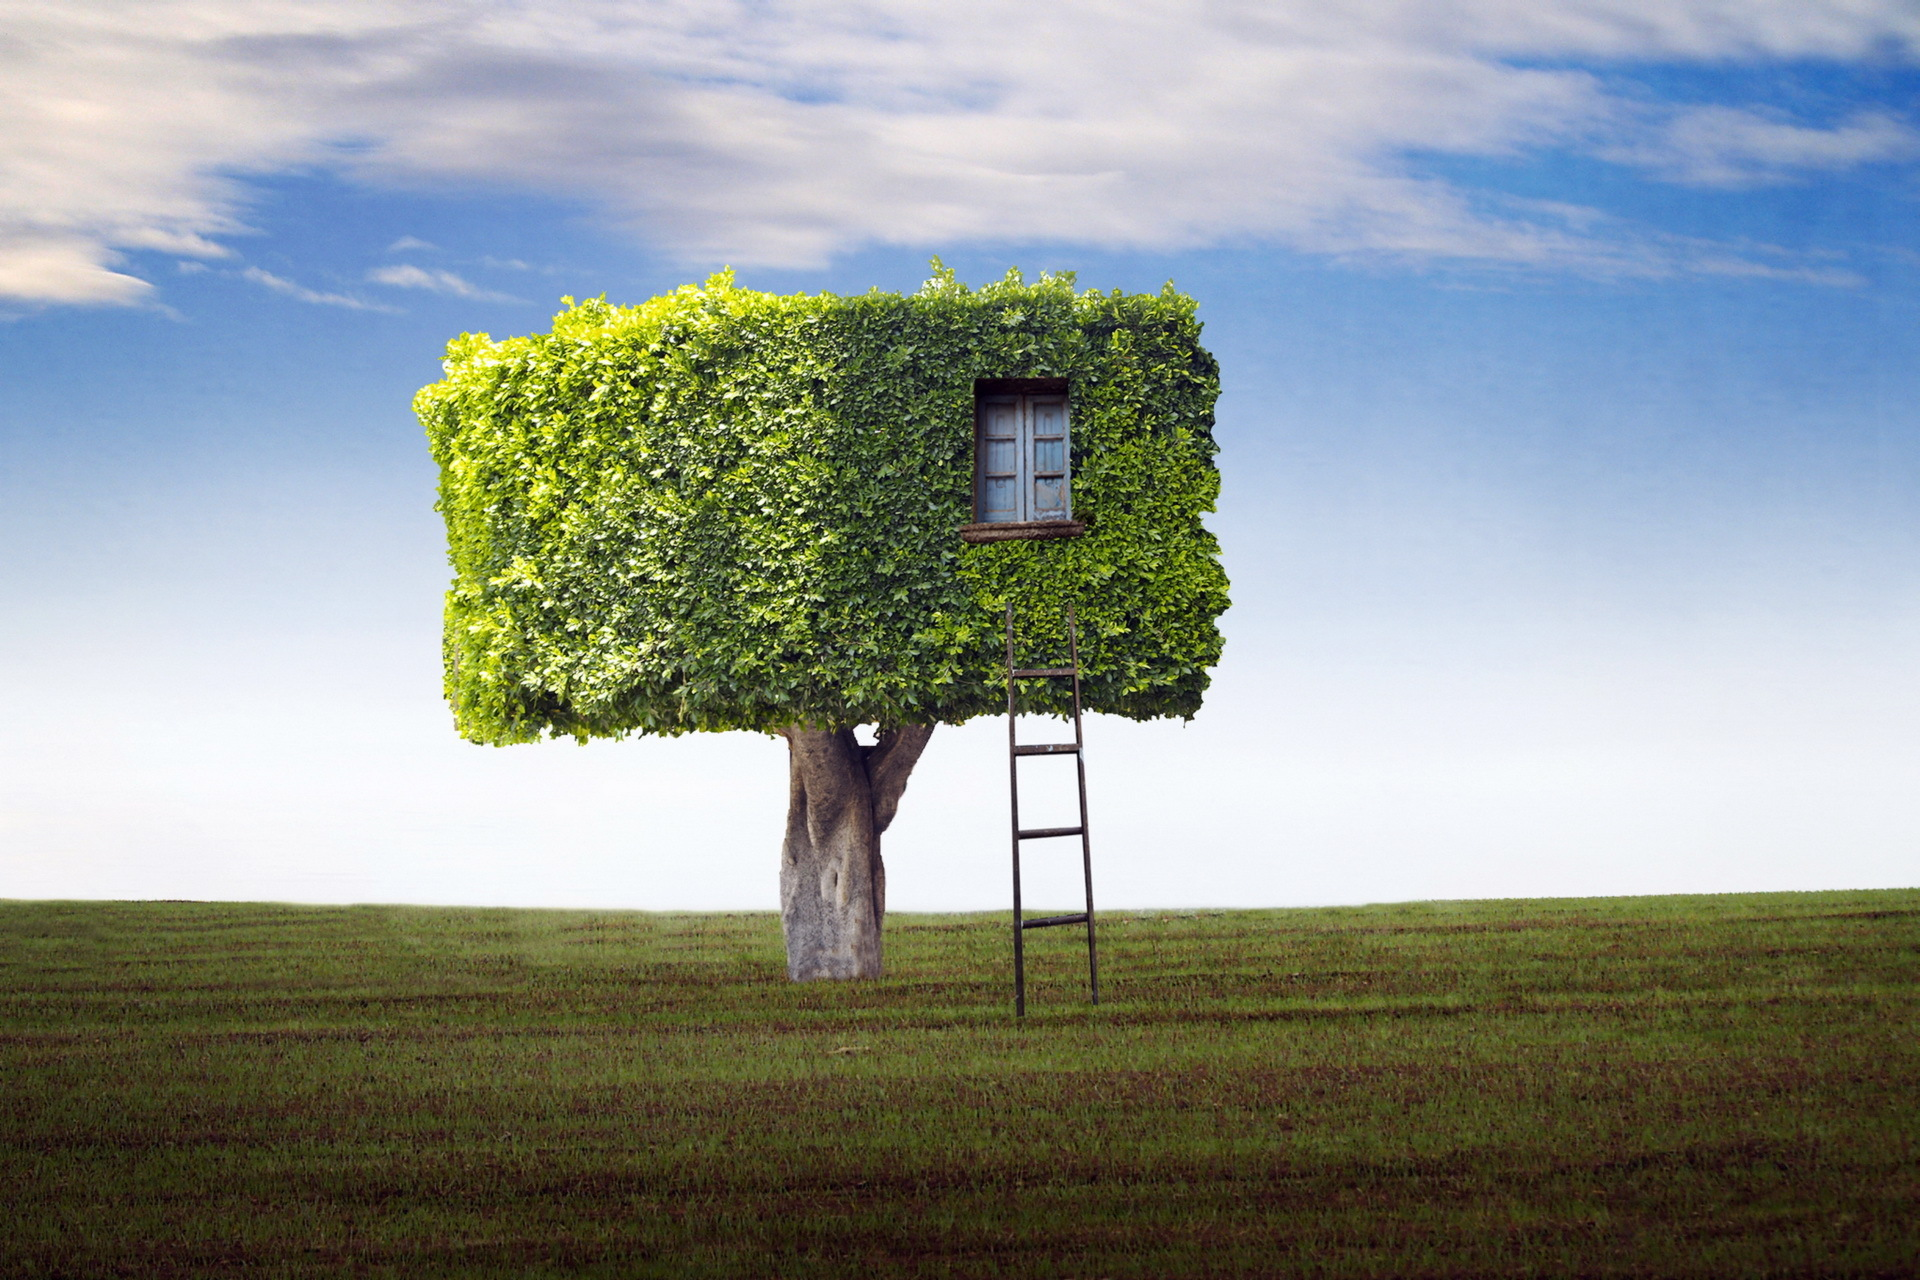 Field tree house ladder wallpaper 1920x1280 79371 for Tree wallpaper for home